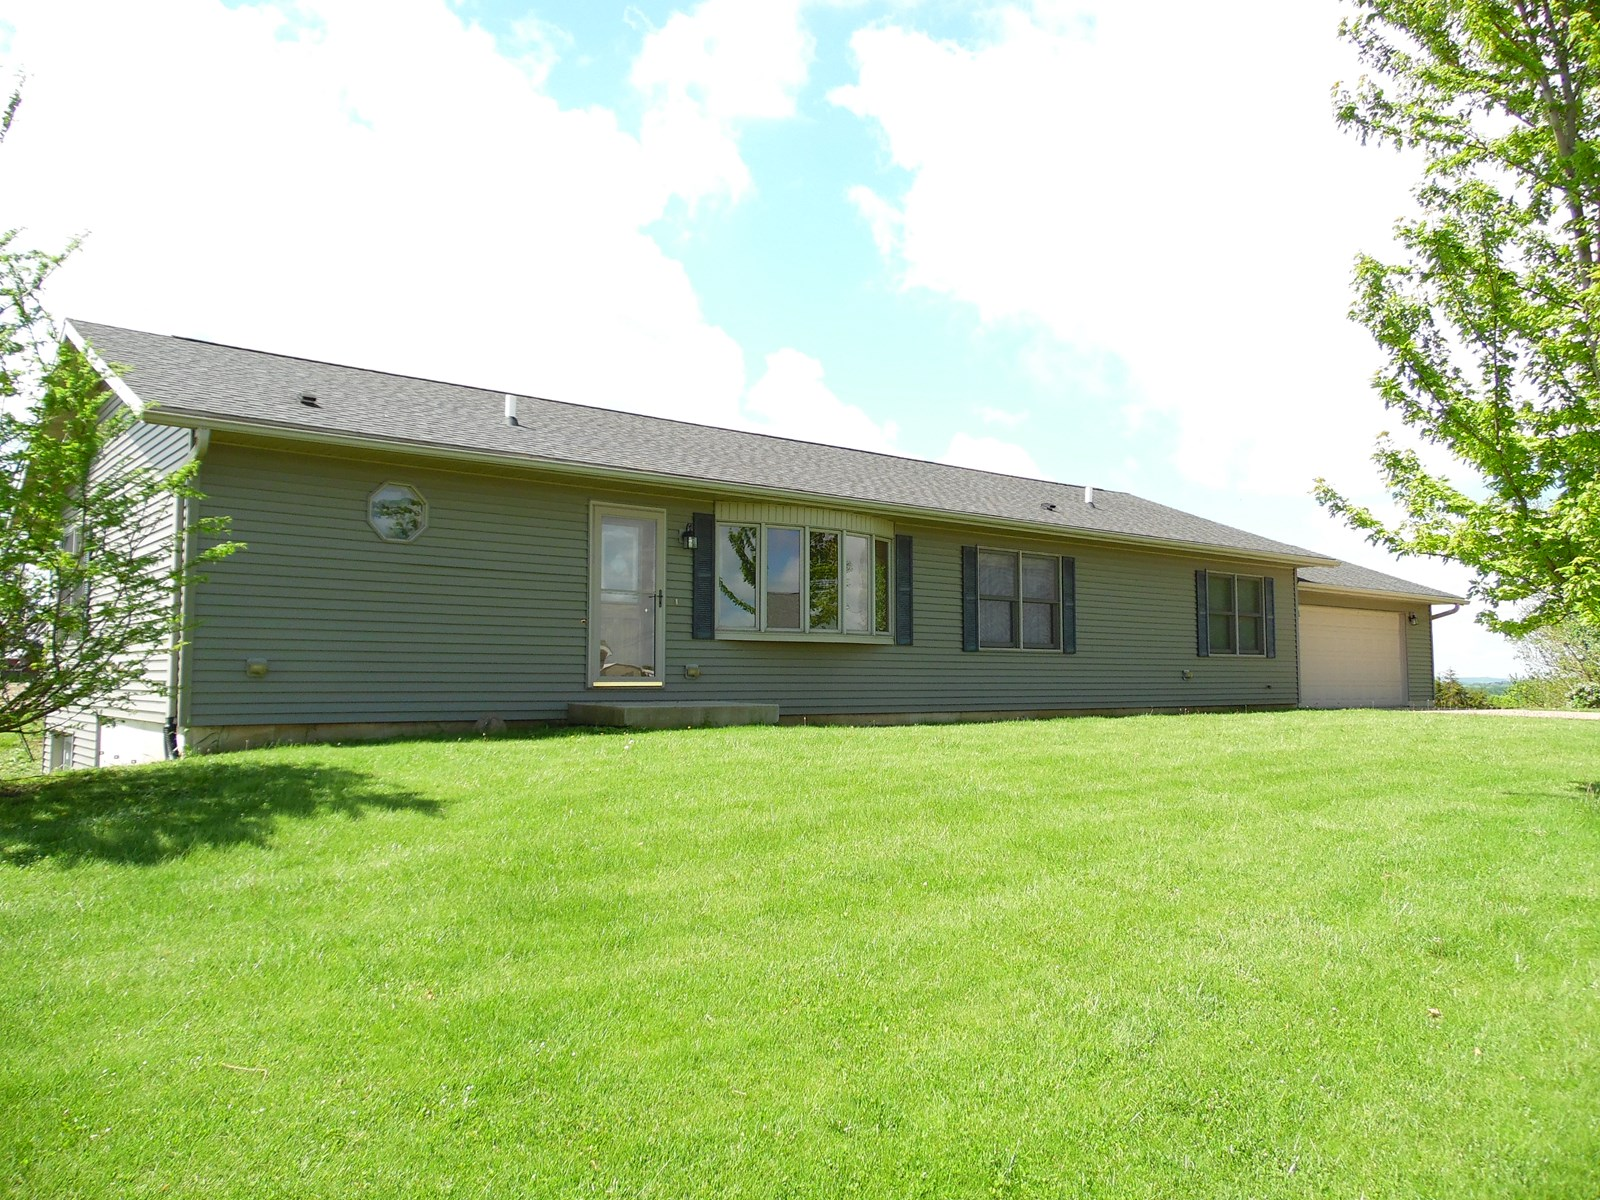 Ranch Style Home for Sale in East Dubuque, IL